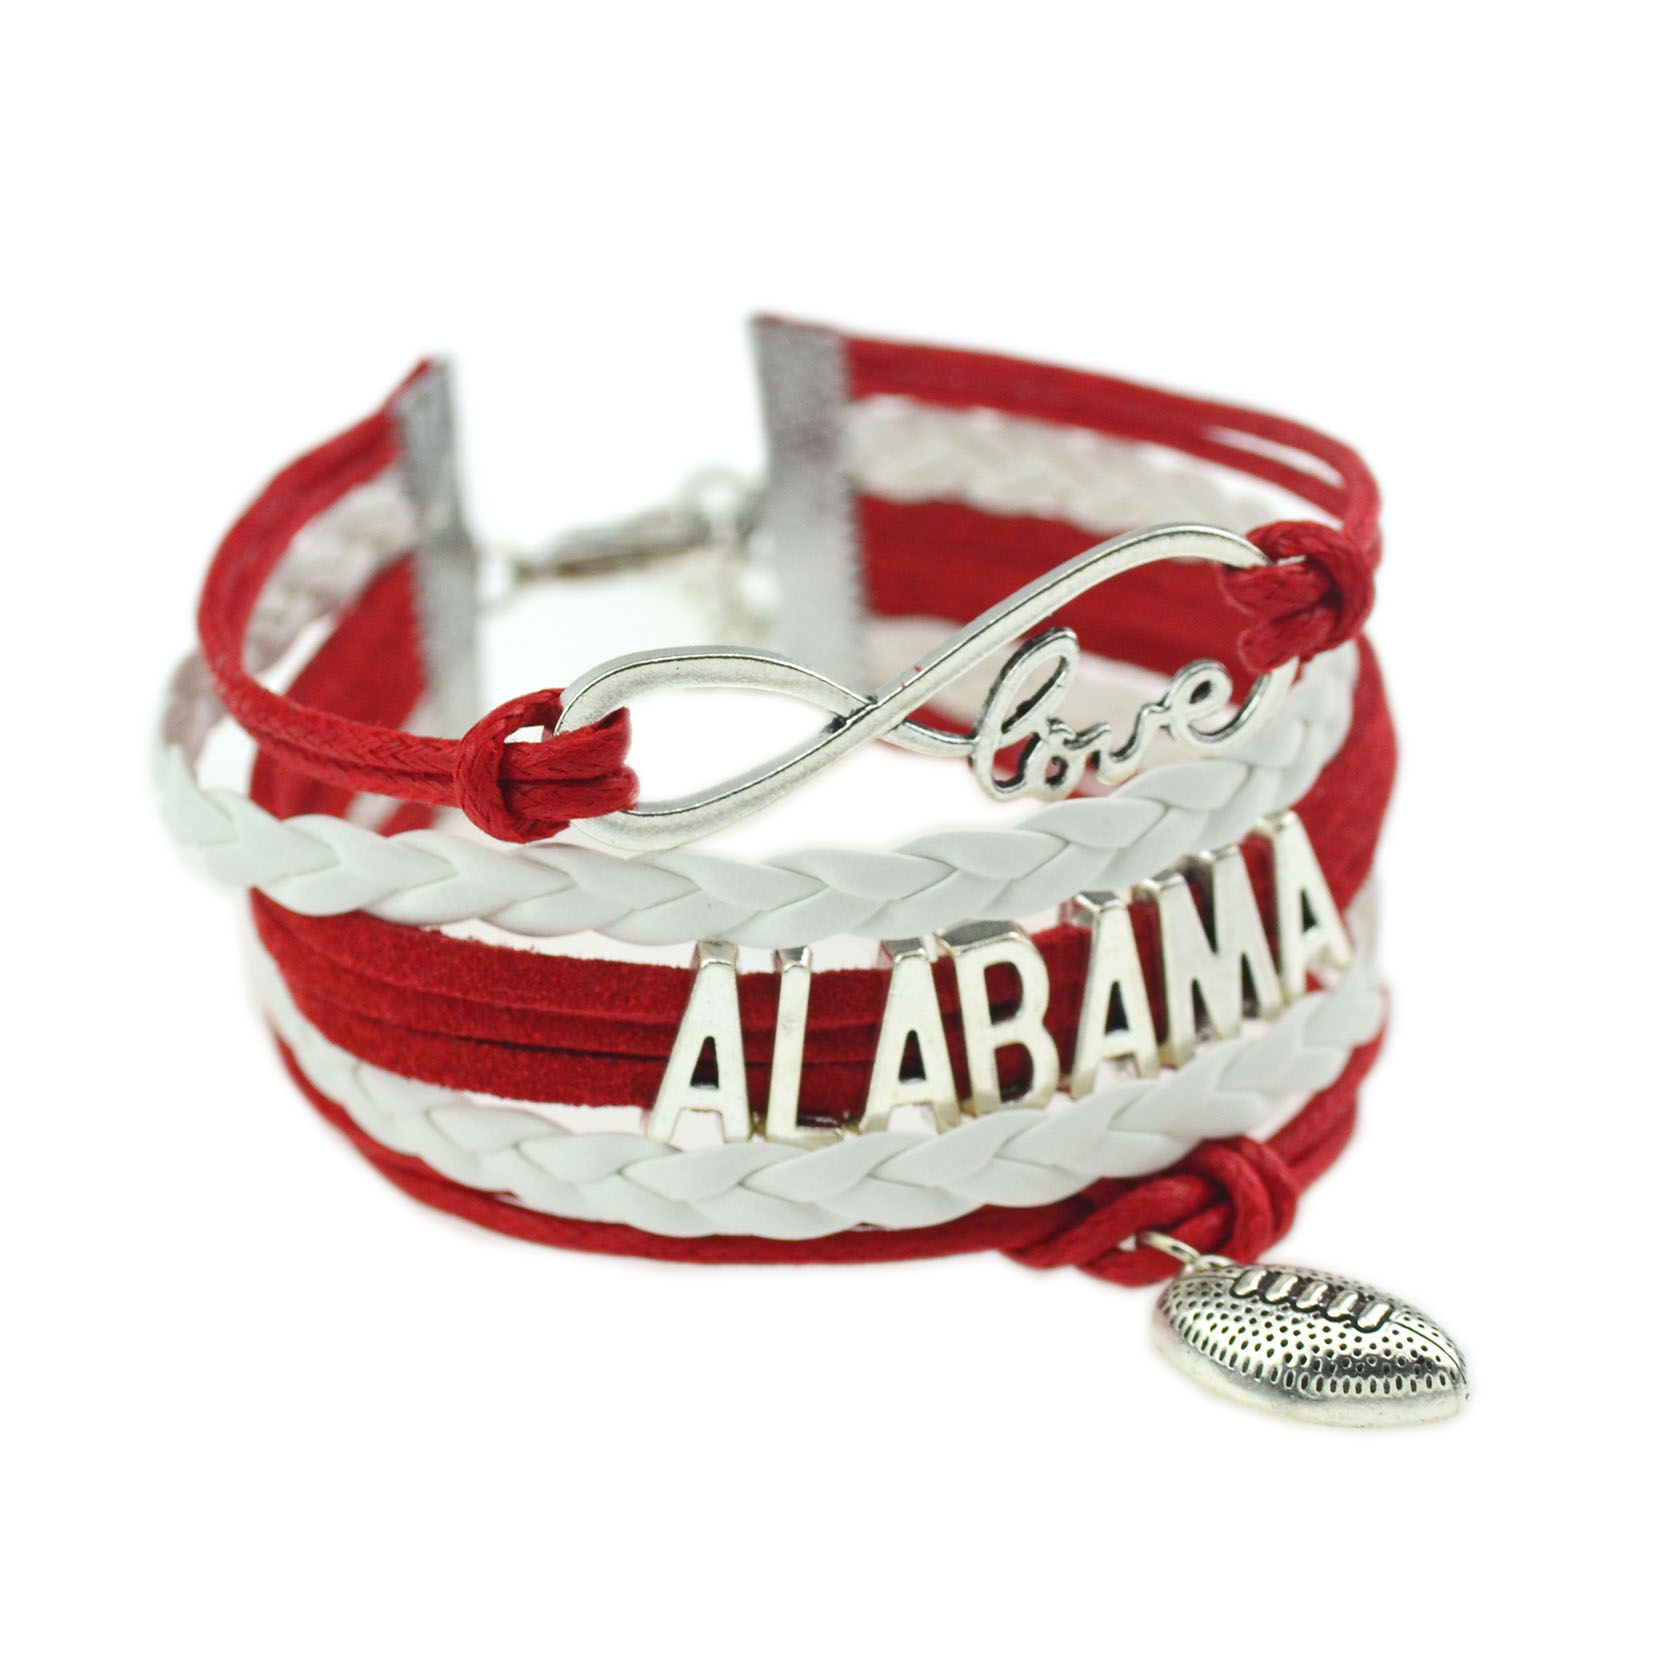 2016 New Arrival Super Bowl Vintage Alabama Rugby Leather Bracelets & Bangles Fashion Women & Man Jewelry Football Bracelet(China (Mainland))